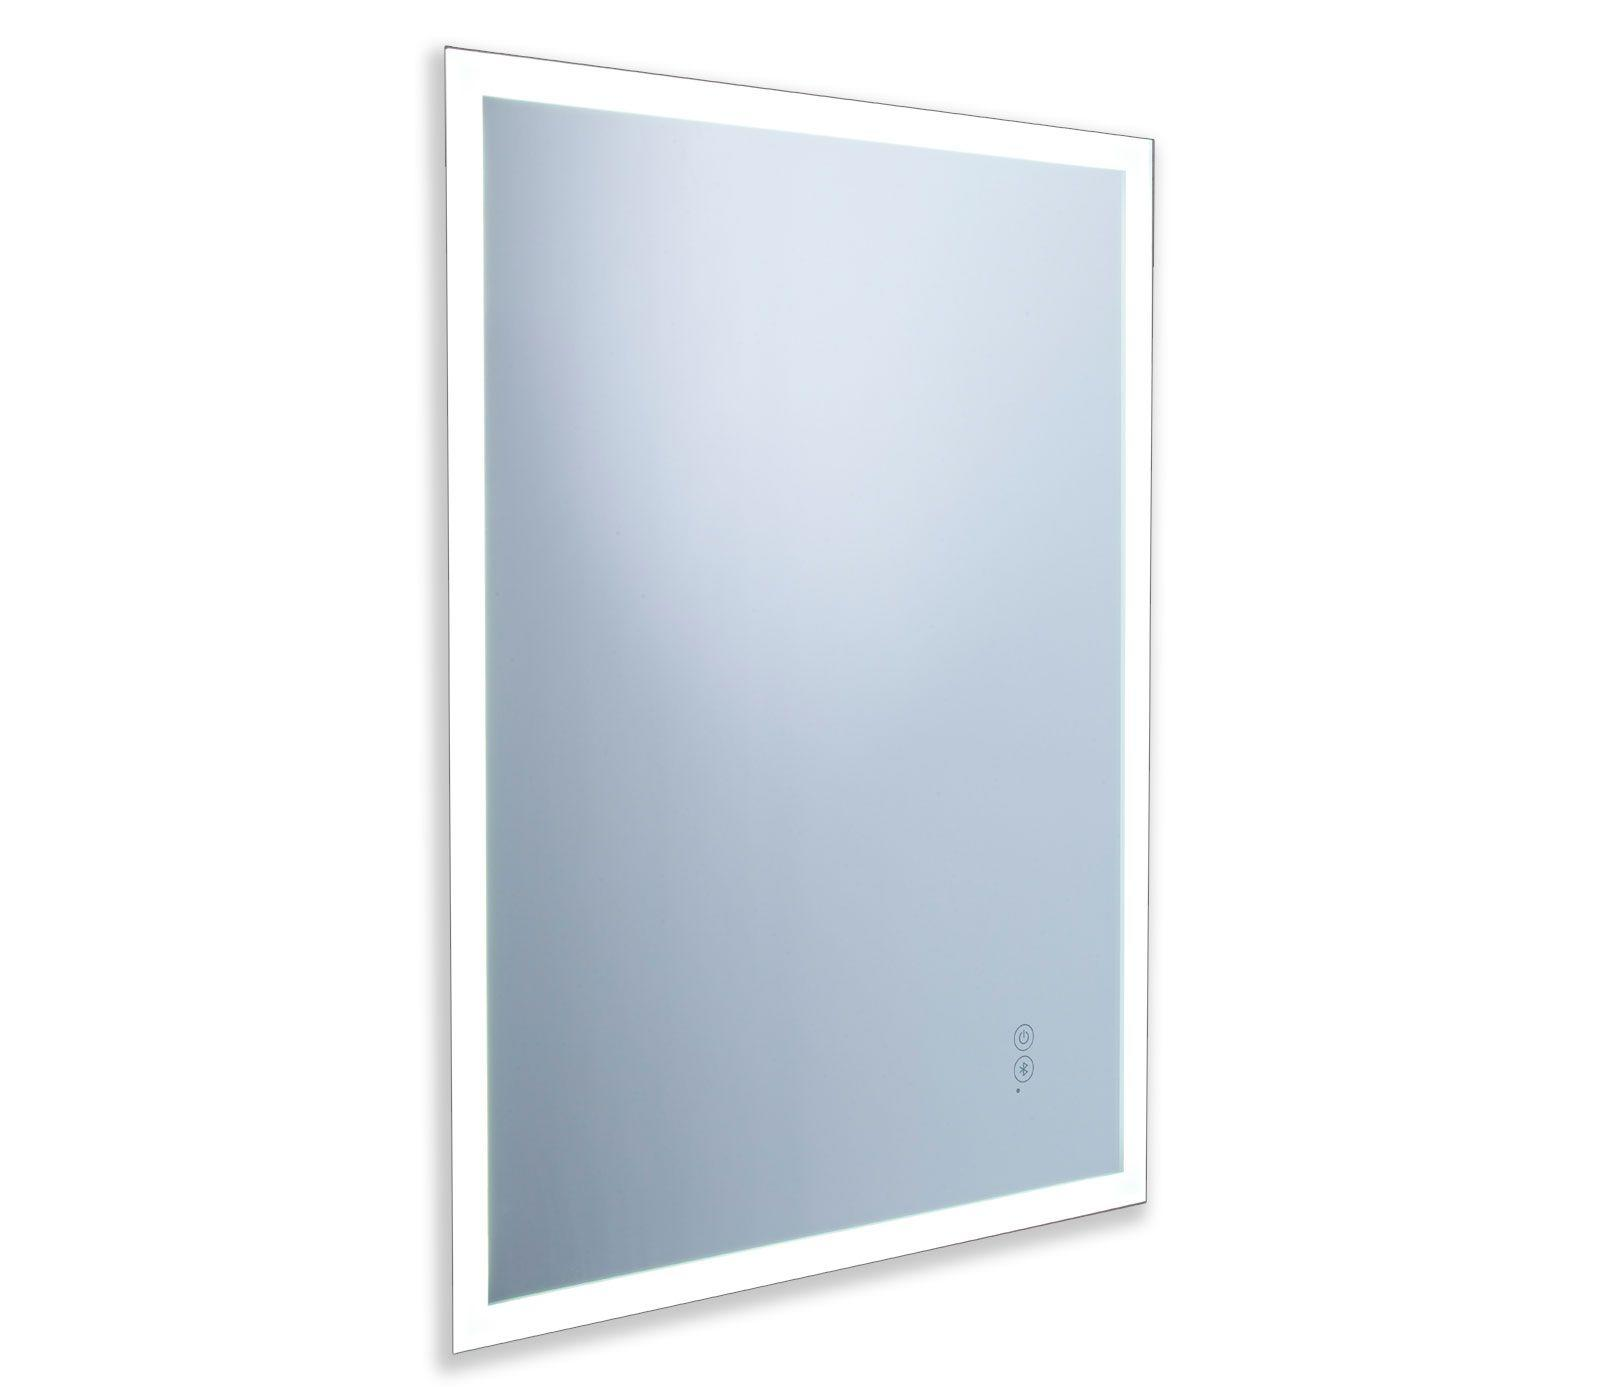 Buy Roper Rhodes Forte Illuminated Bluetooth Bathroom Mirror